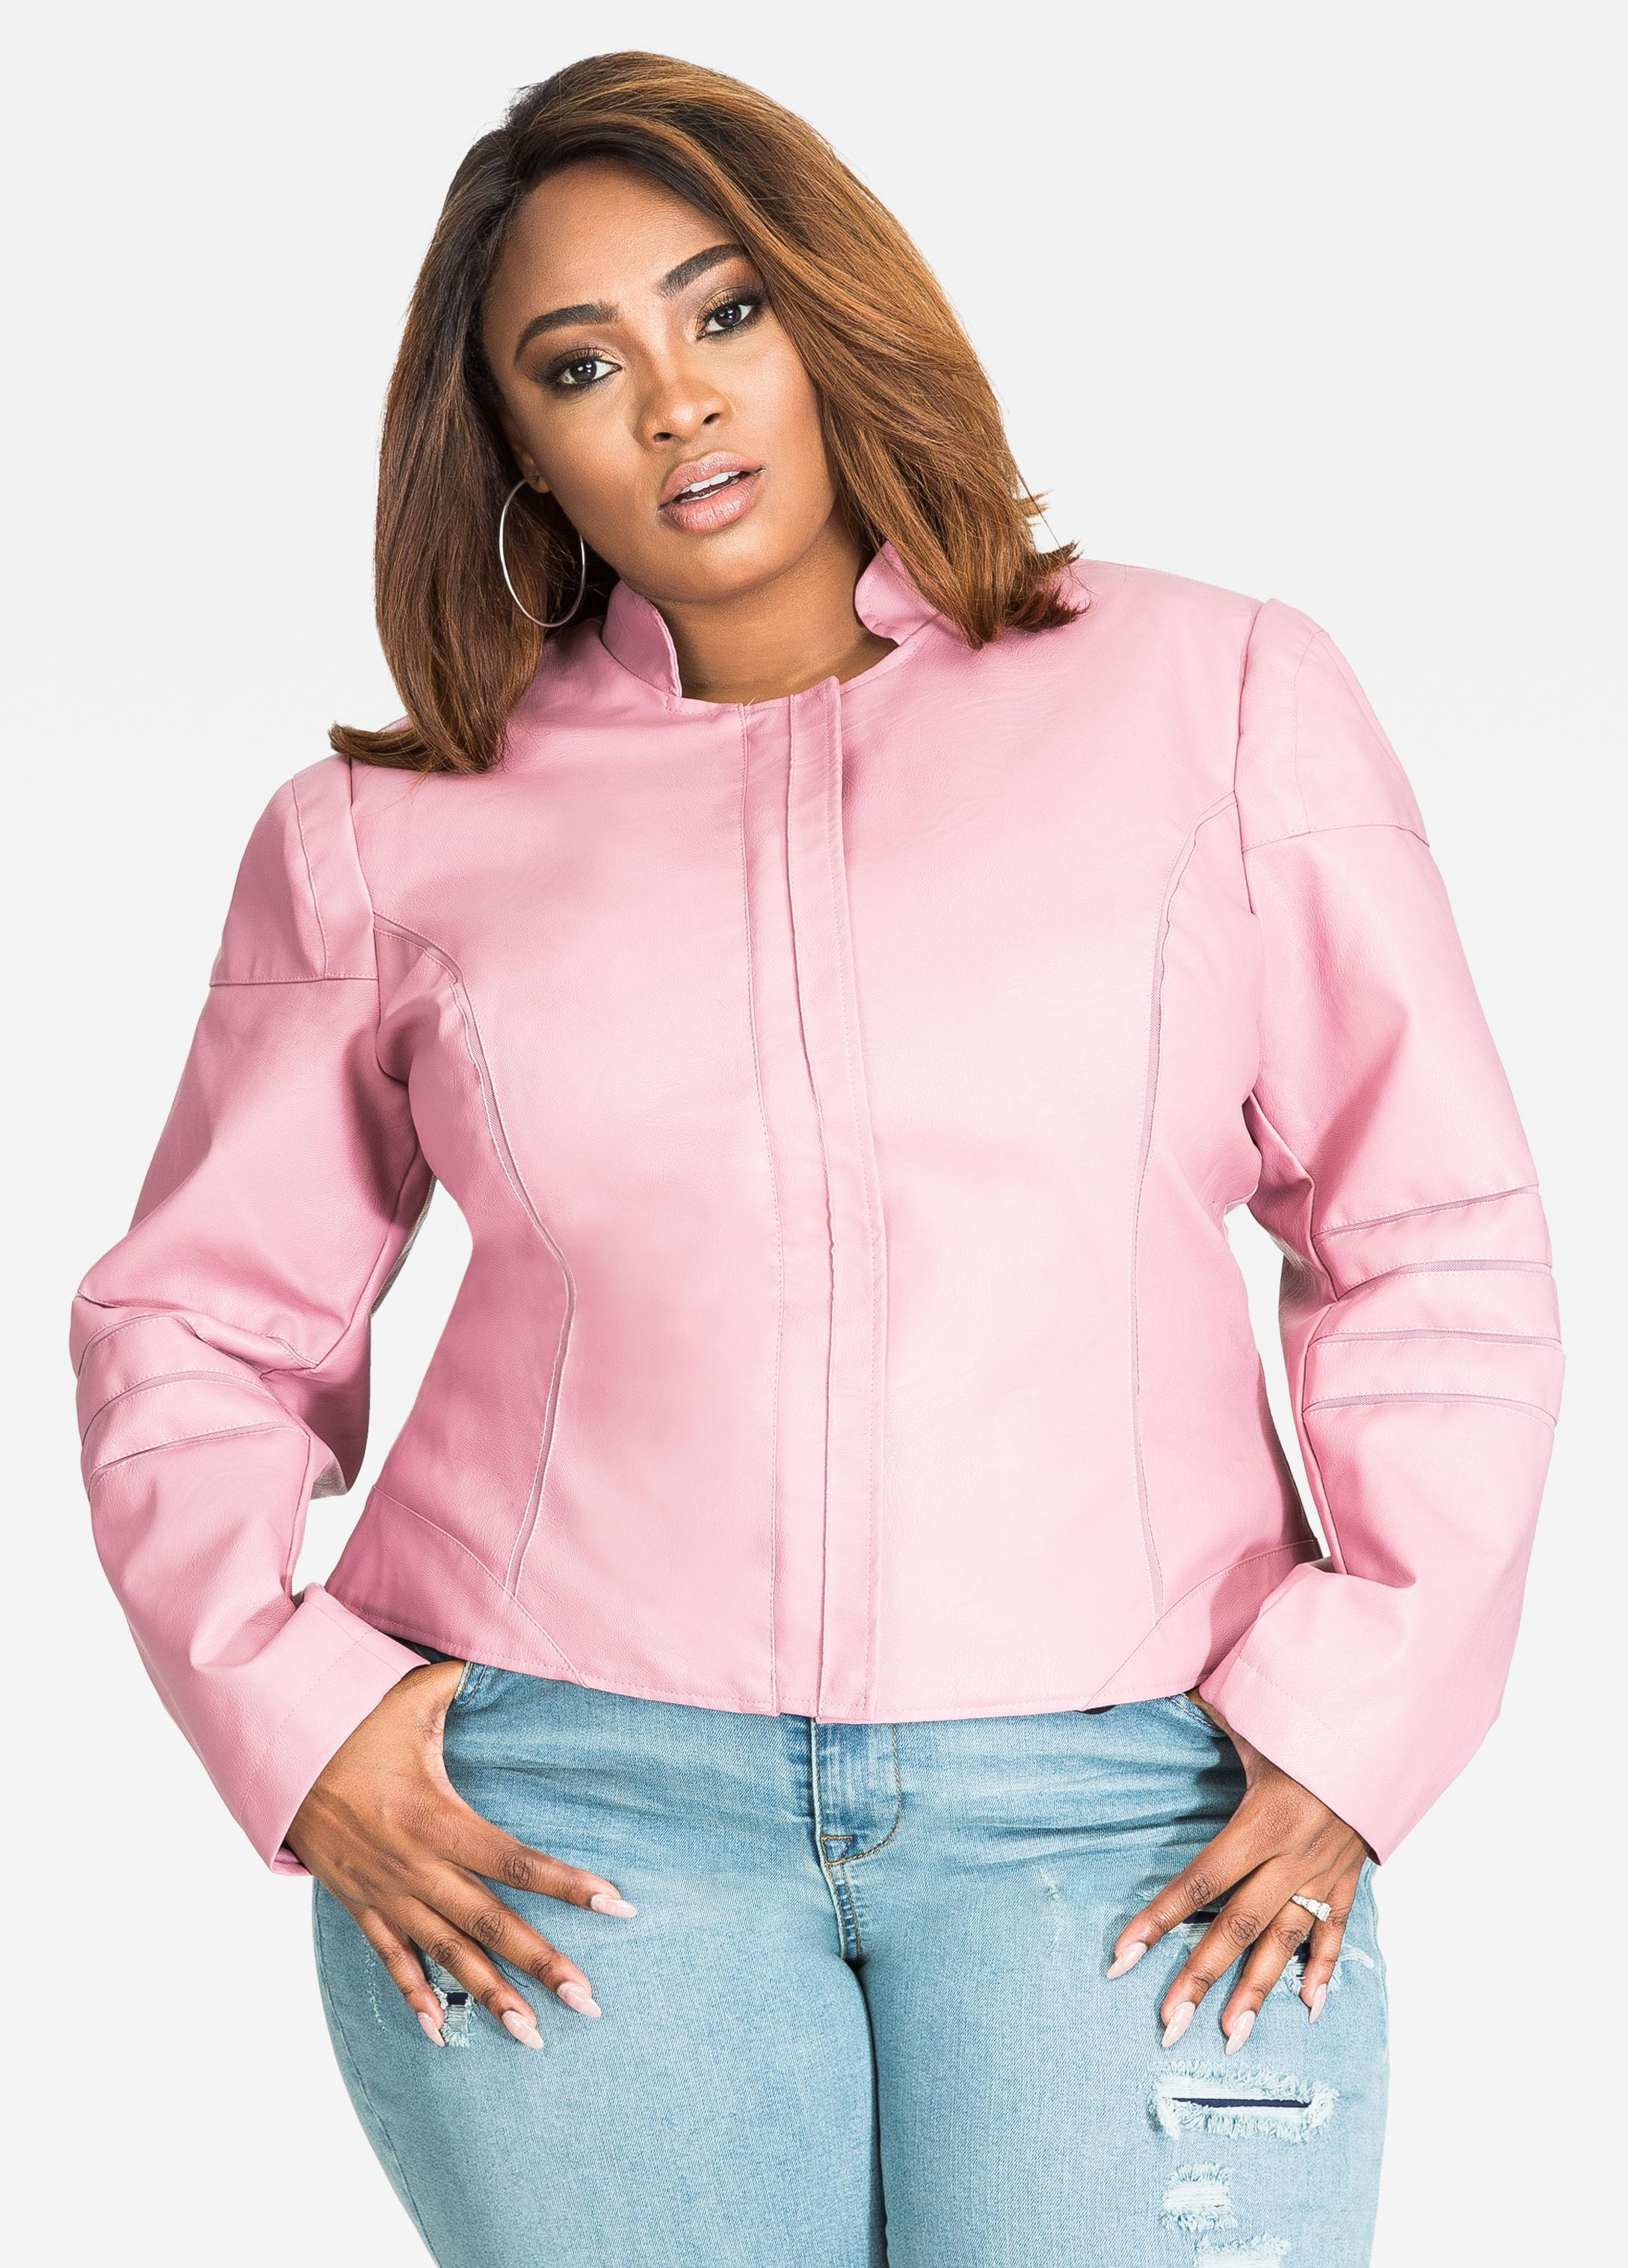 ed57a5fff37be Gallery. Previously sold at  Ashley Stewart · Women s Blush Leather Jackets  ...